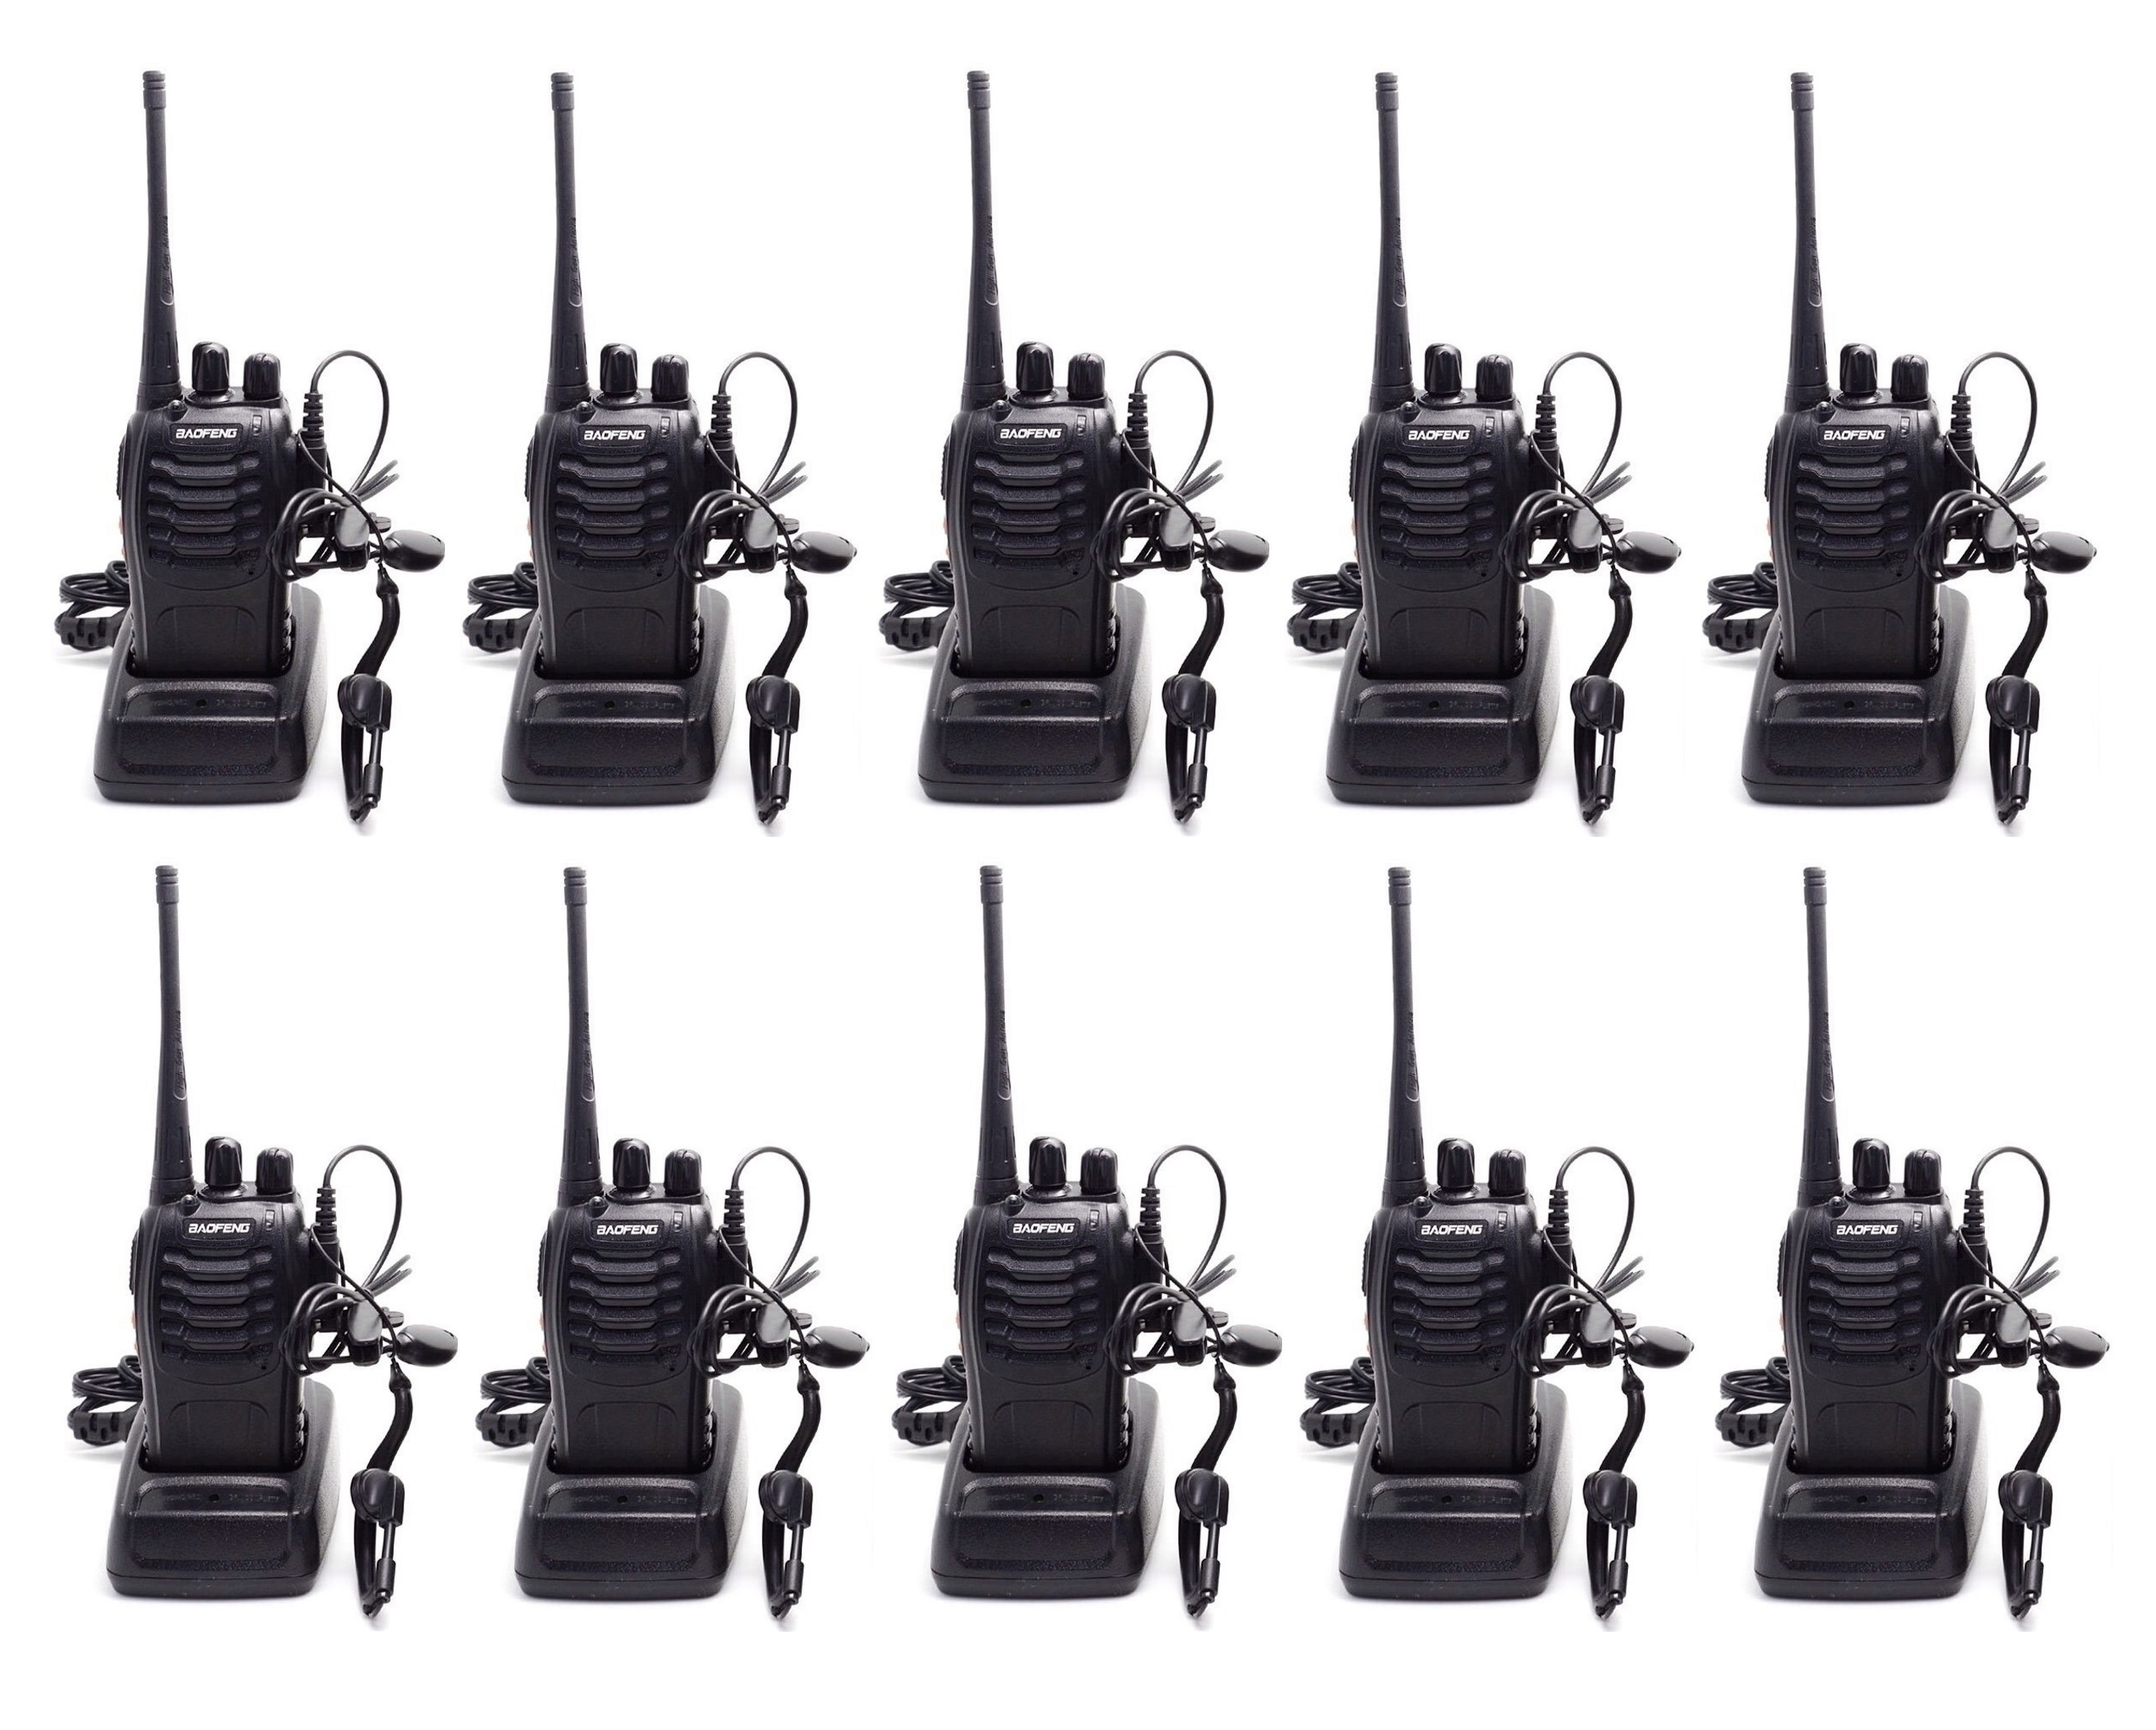 10 Pack Uhf 400 470mhz 2 Way Radios Shop For Things